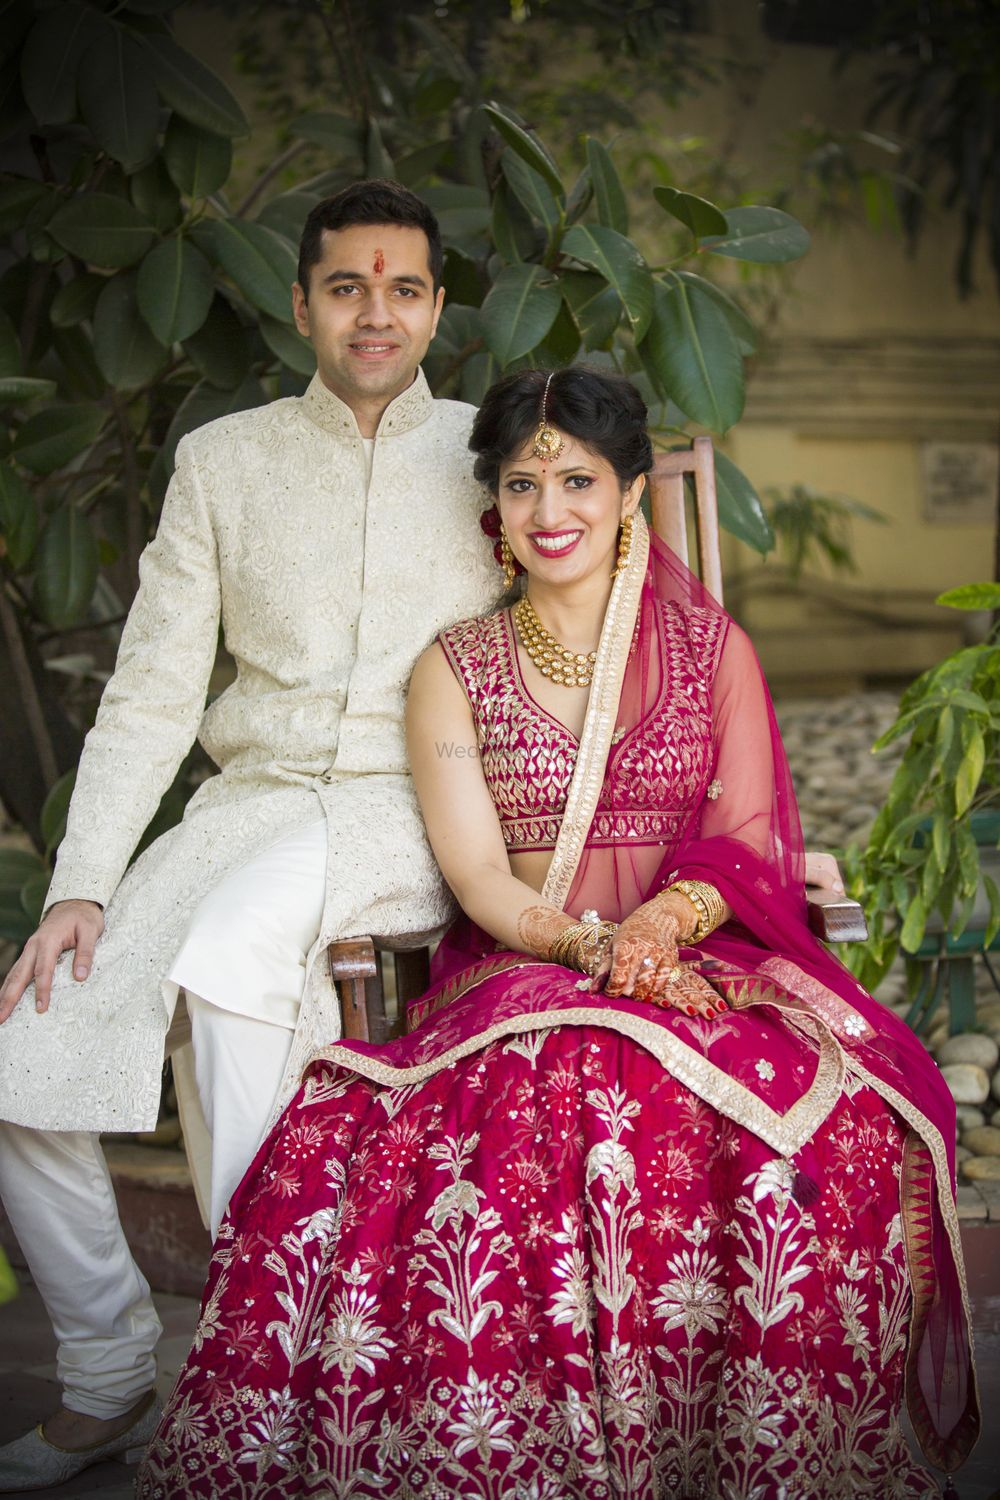 Photo of Coordinated bride and groom with maroon and white outfits